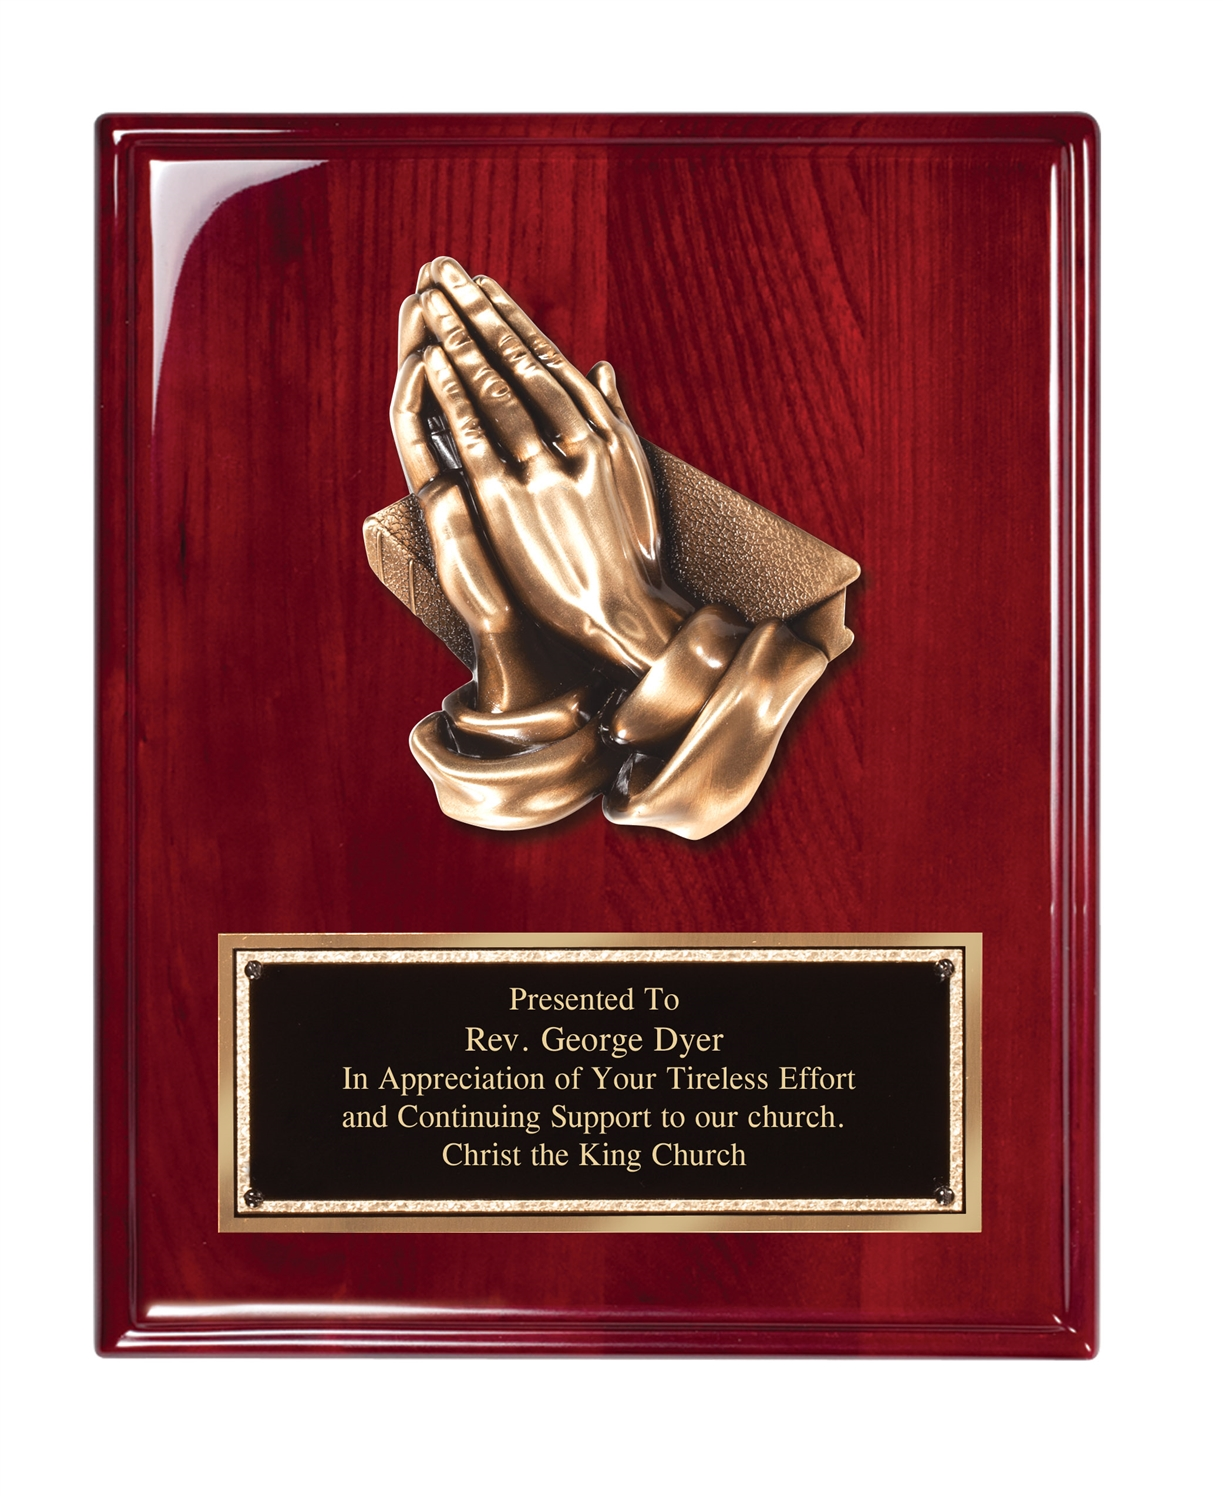 8 x 10 Rosewood Piano Finish Religious Plaque